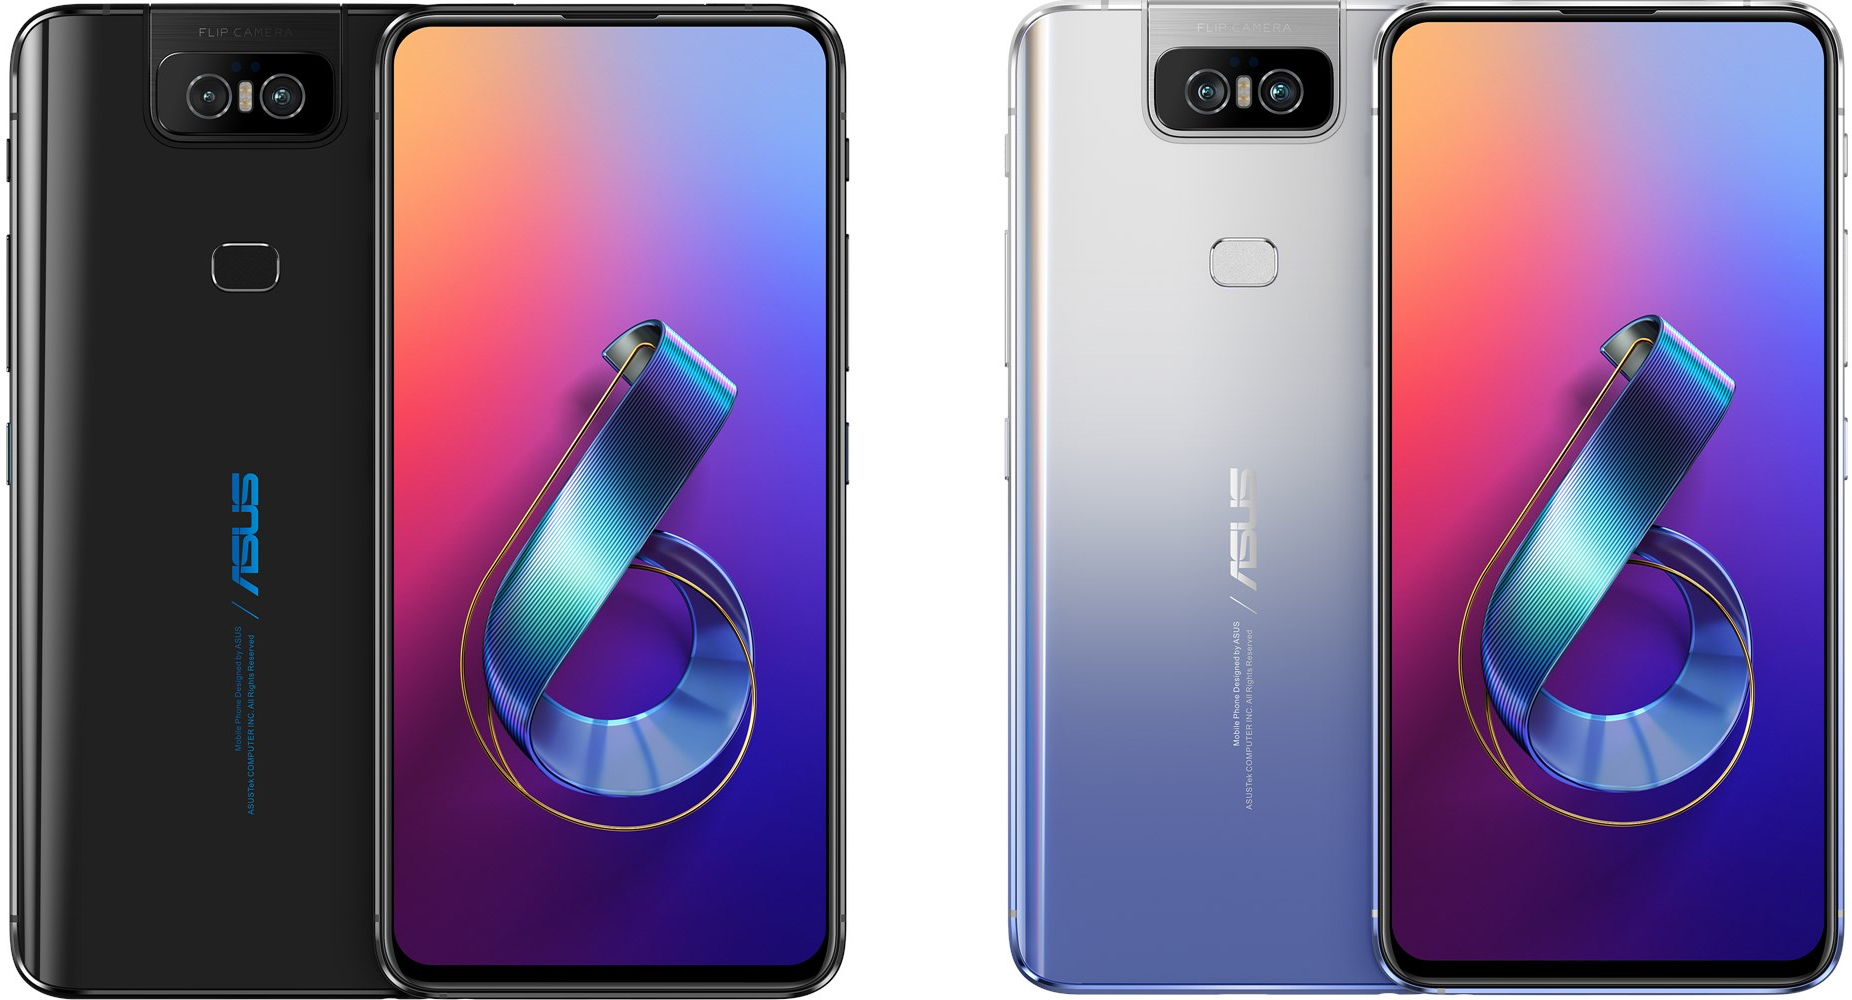 ASUS Launches the ZenFone 6: 6 4-Inch Flagship Phone With Motorized